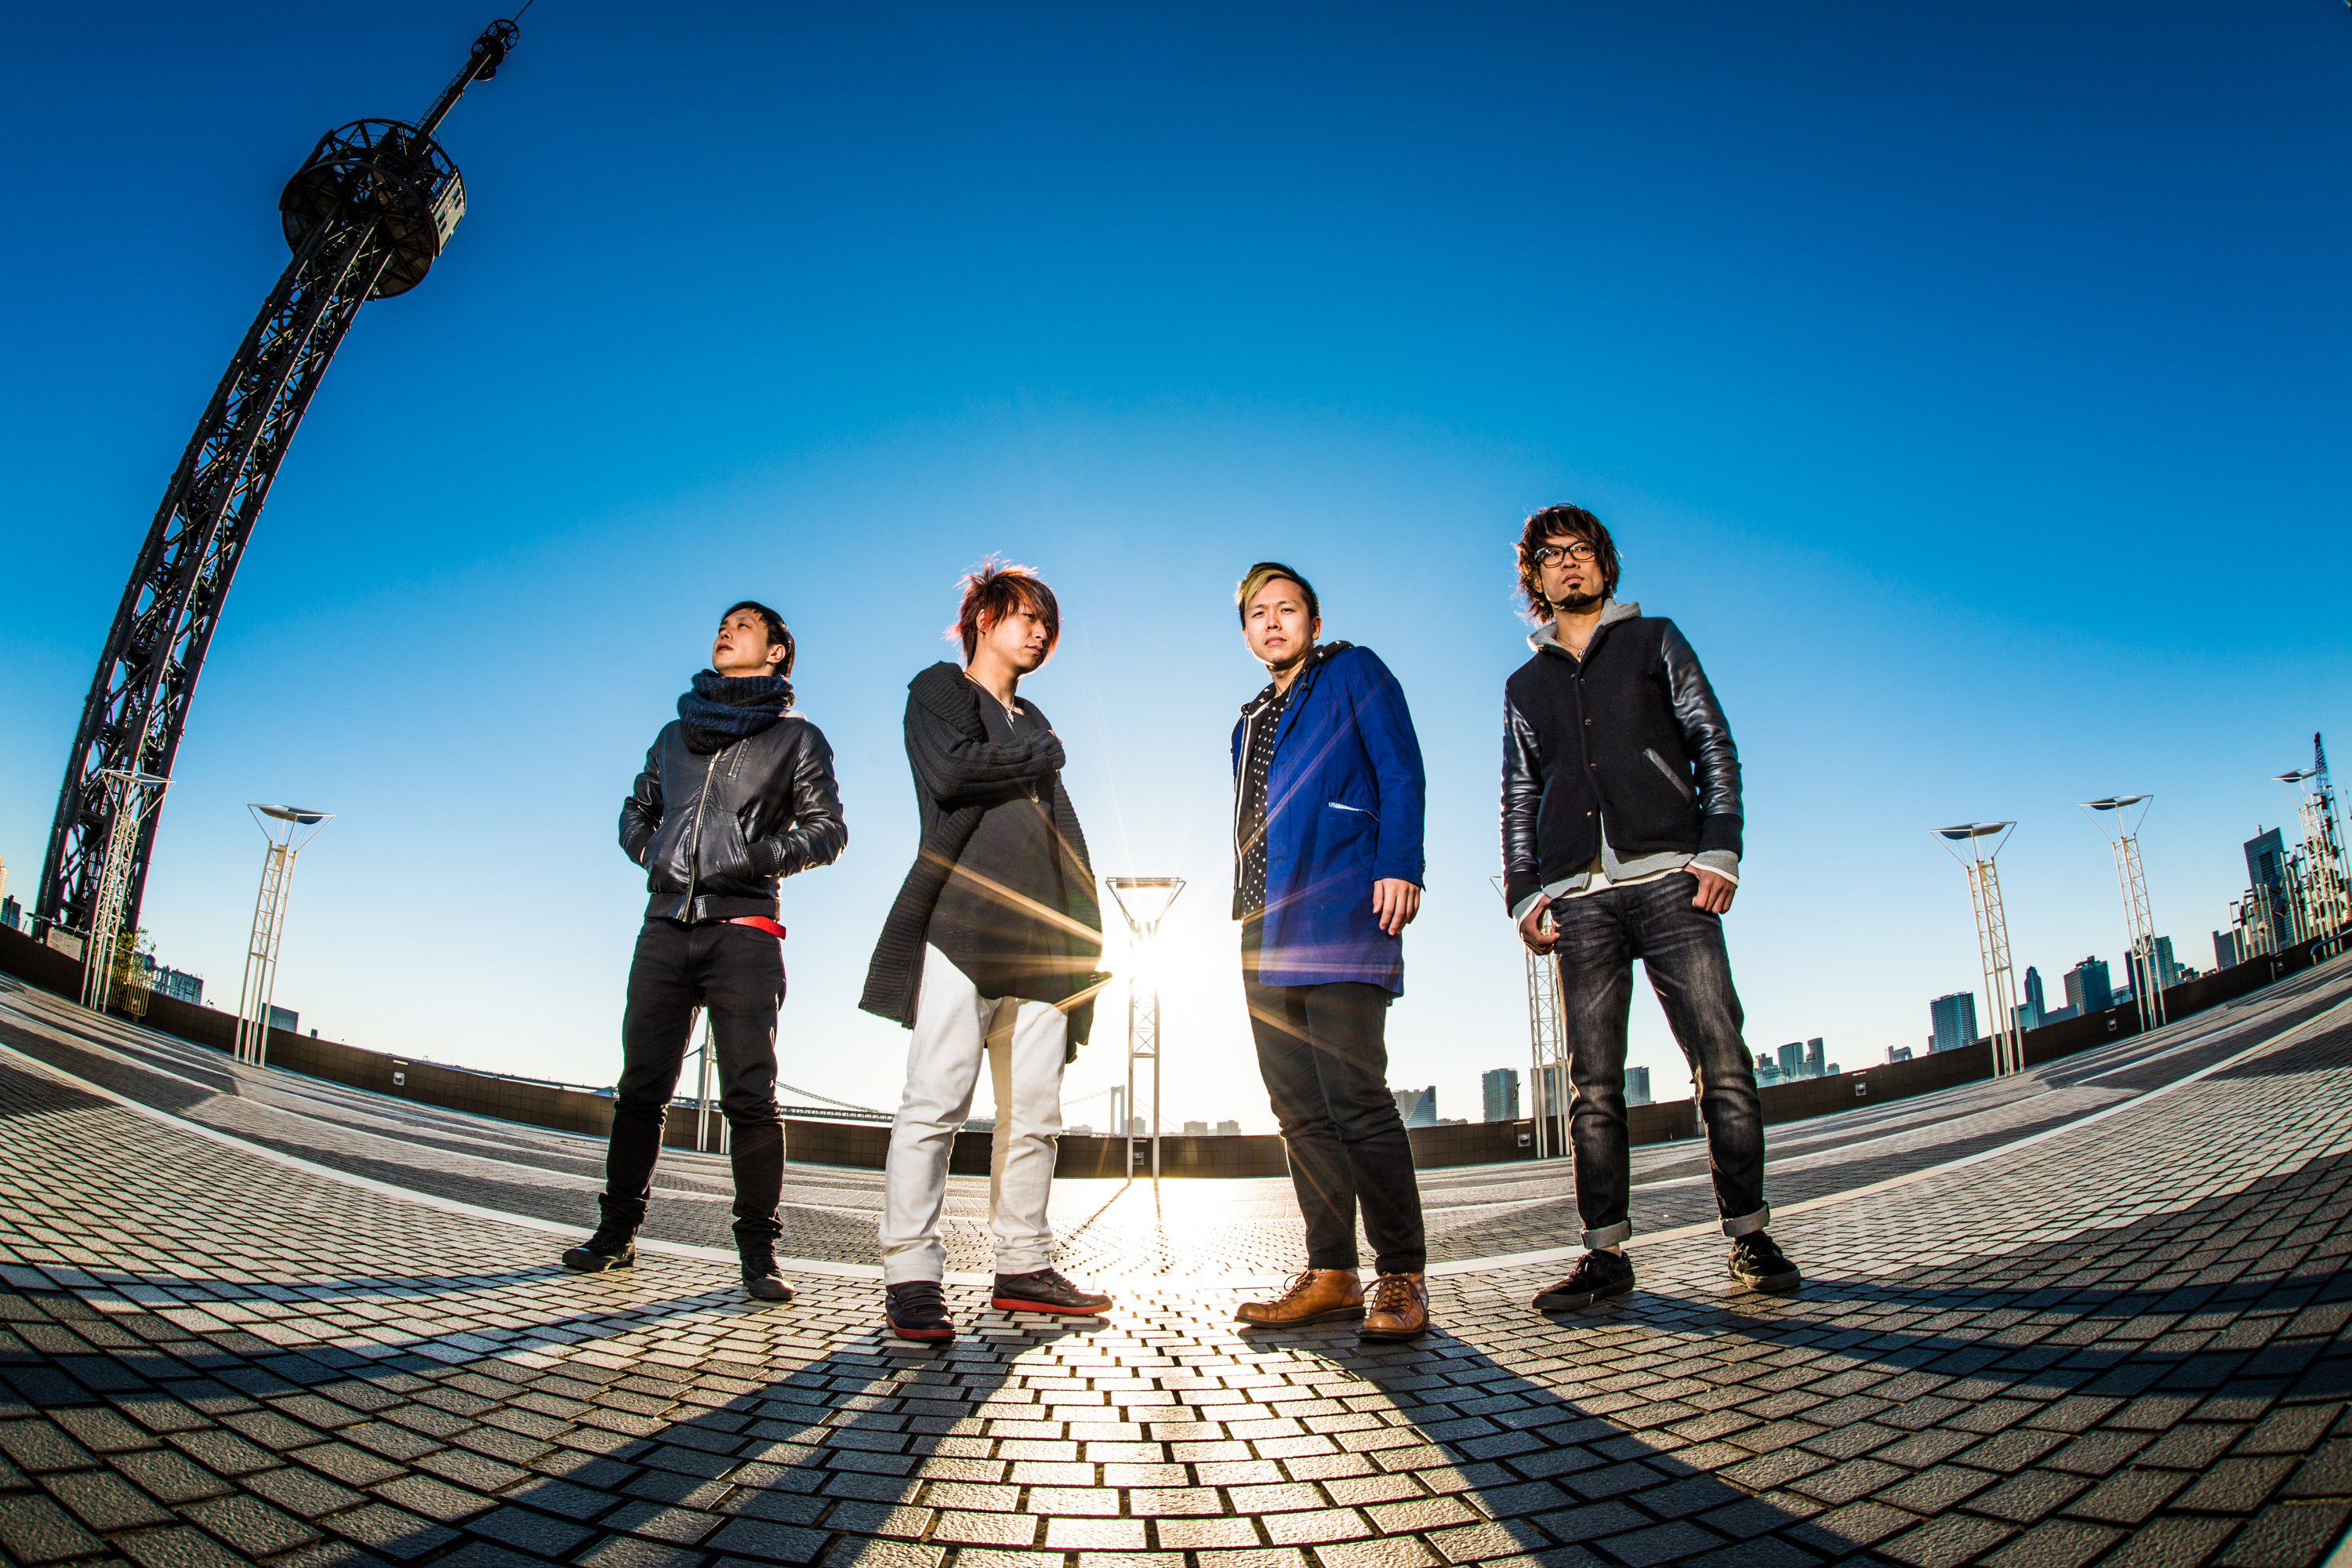 ココニカカルpresents [THE SOUND AROUND LAND Vol.15 -2nd Anniversary-] -Unplugged Side-